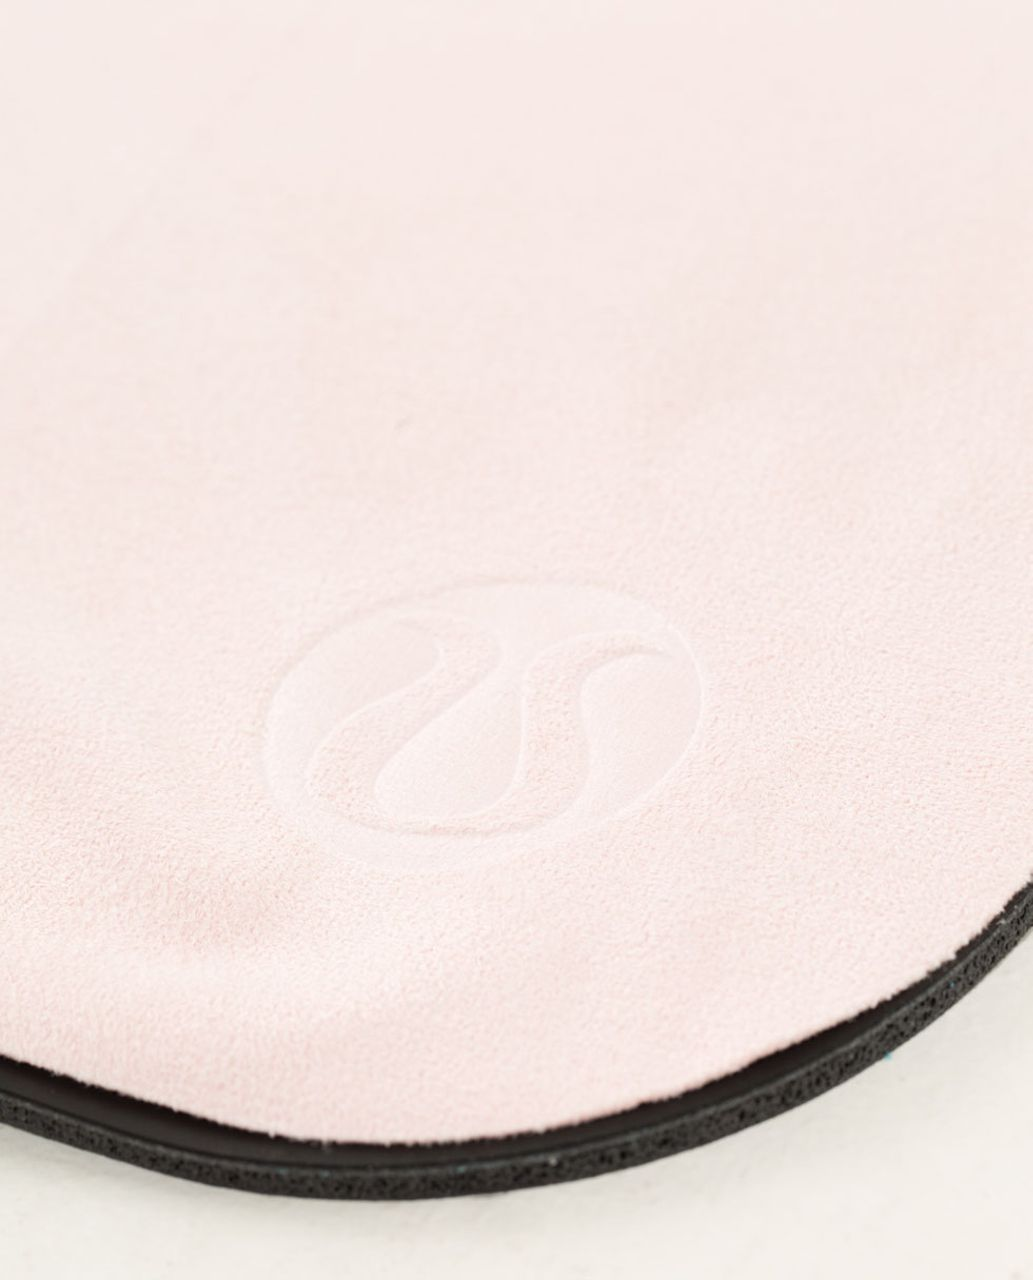 Lululemon The (Small) Towel - Pretty Pink